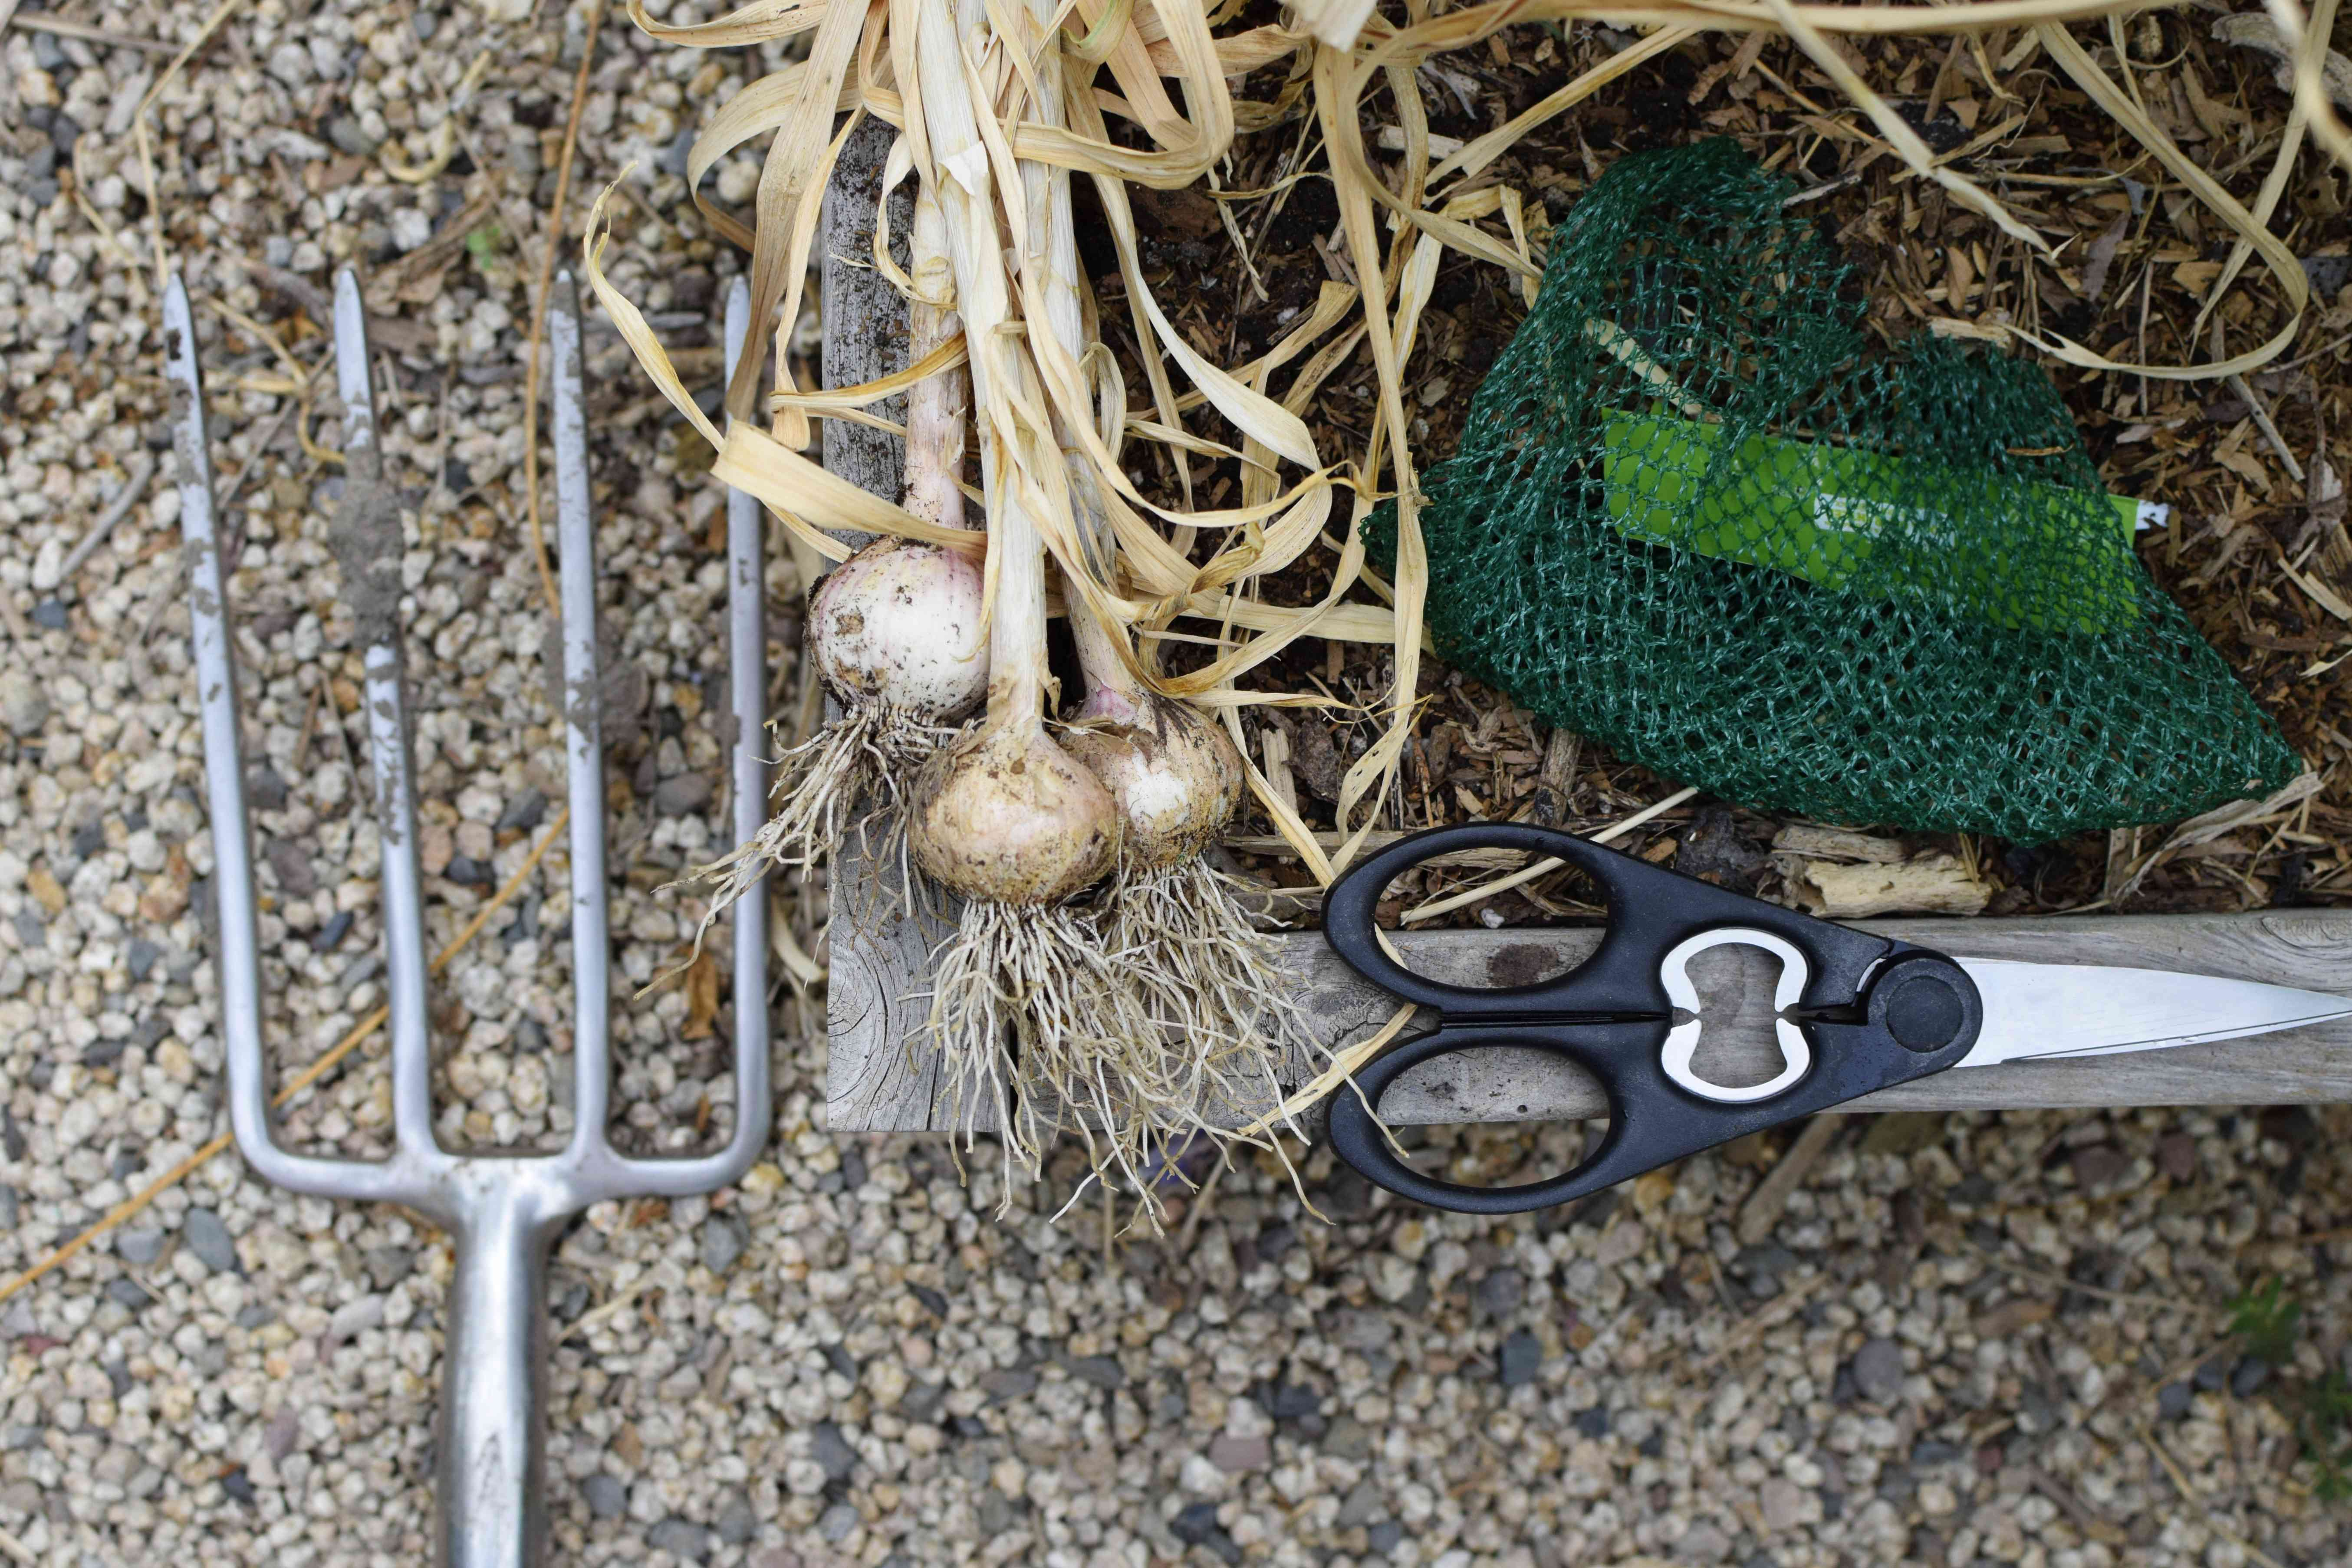 Materials and tools to harvest garlic